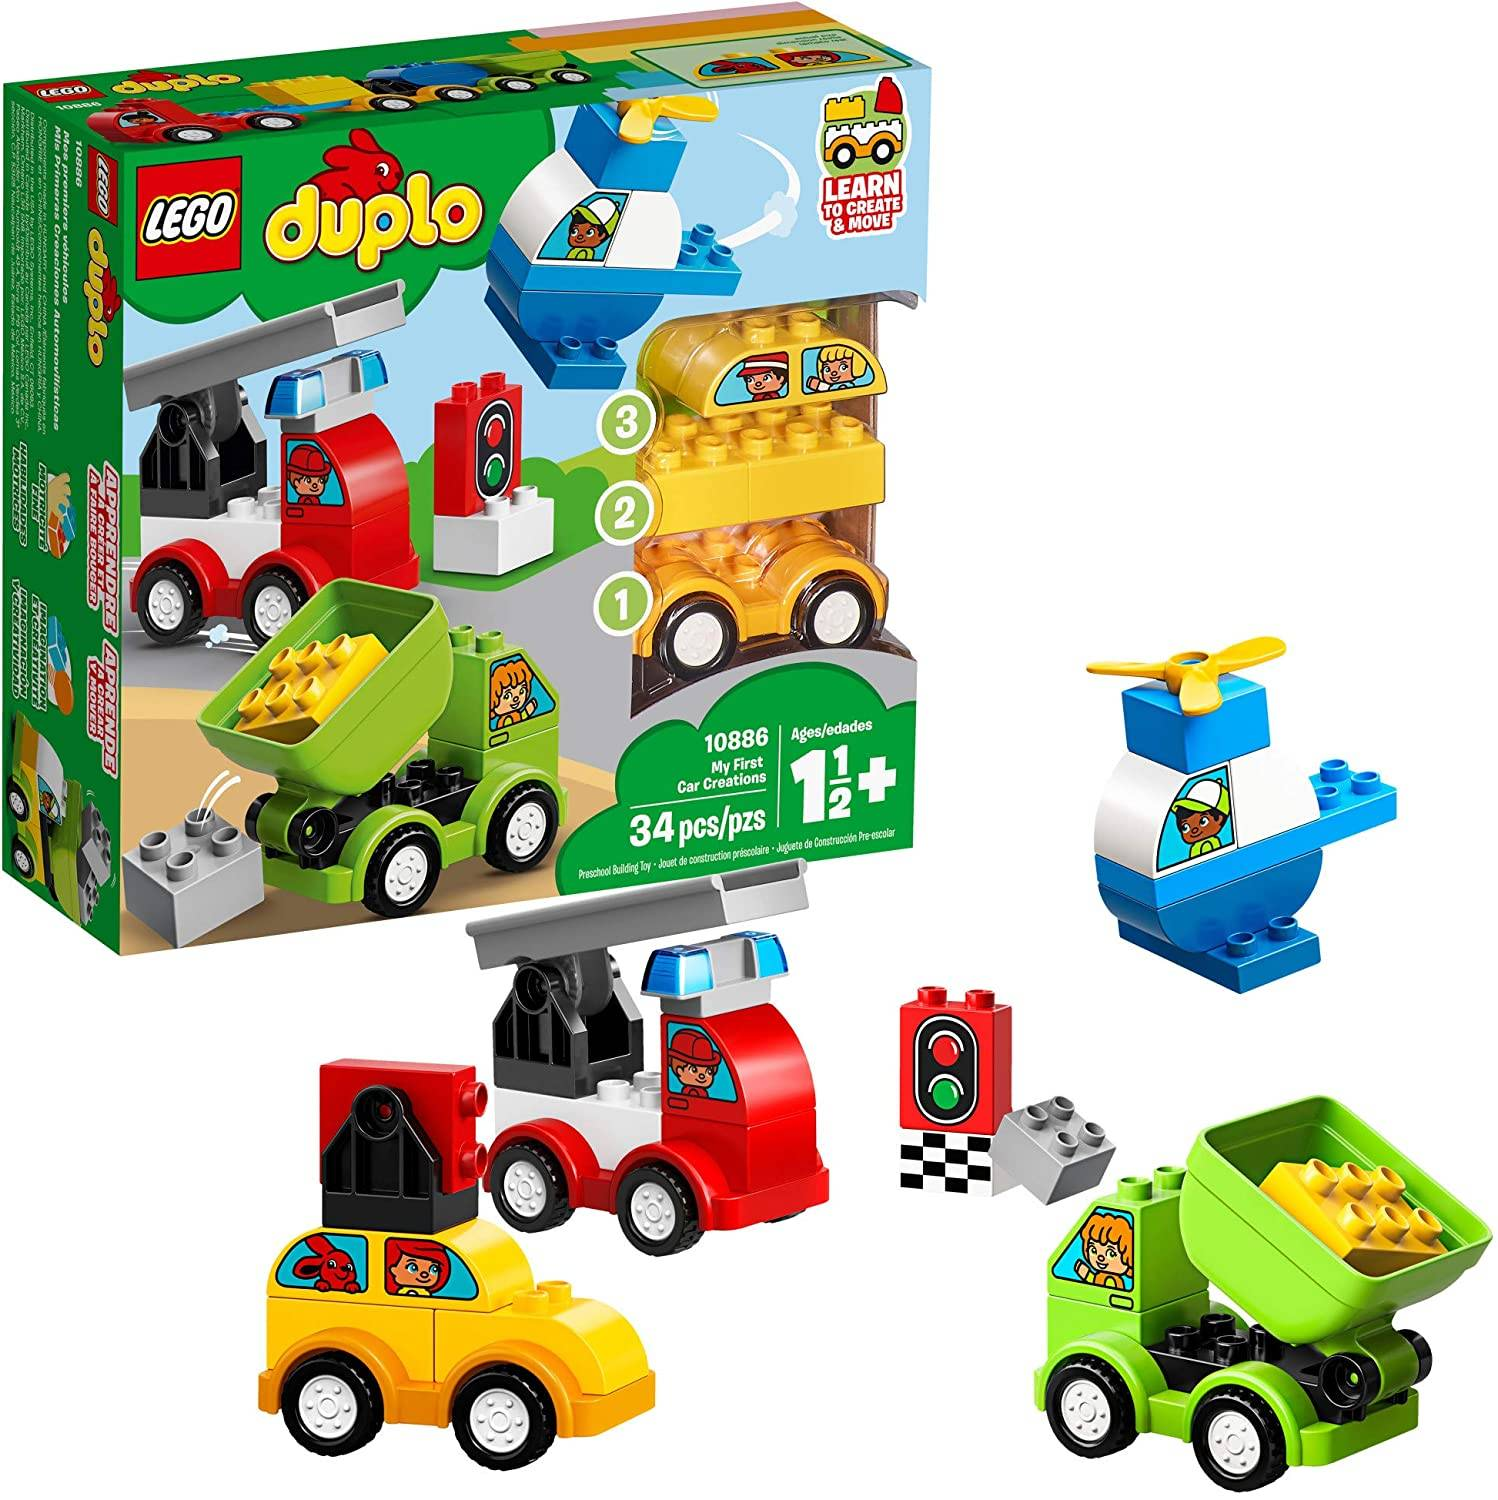 LEGO DUPLO my first car creation